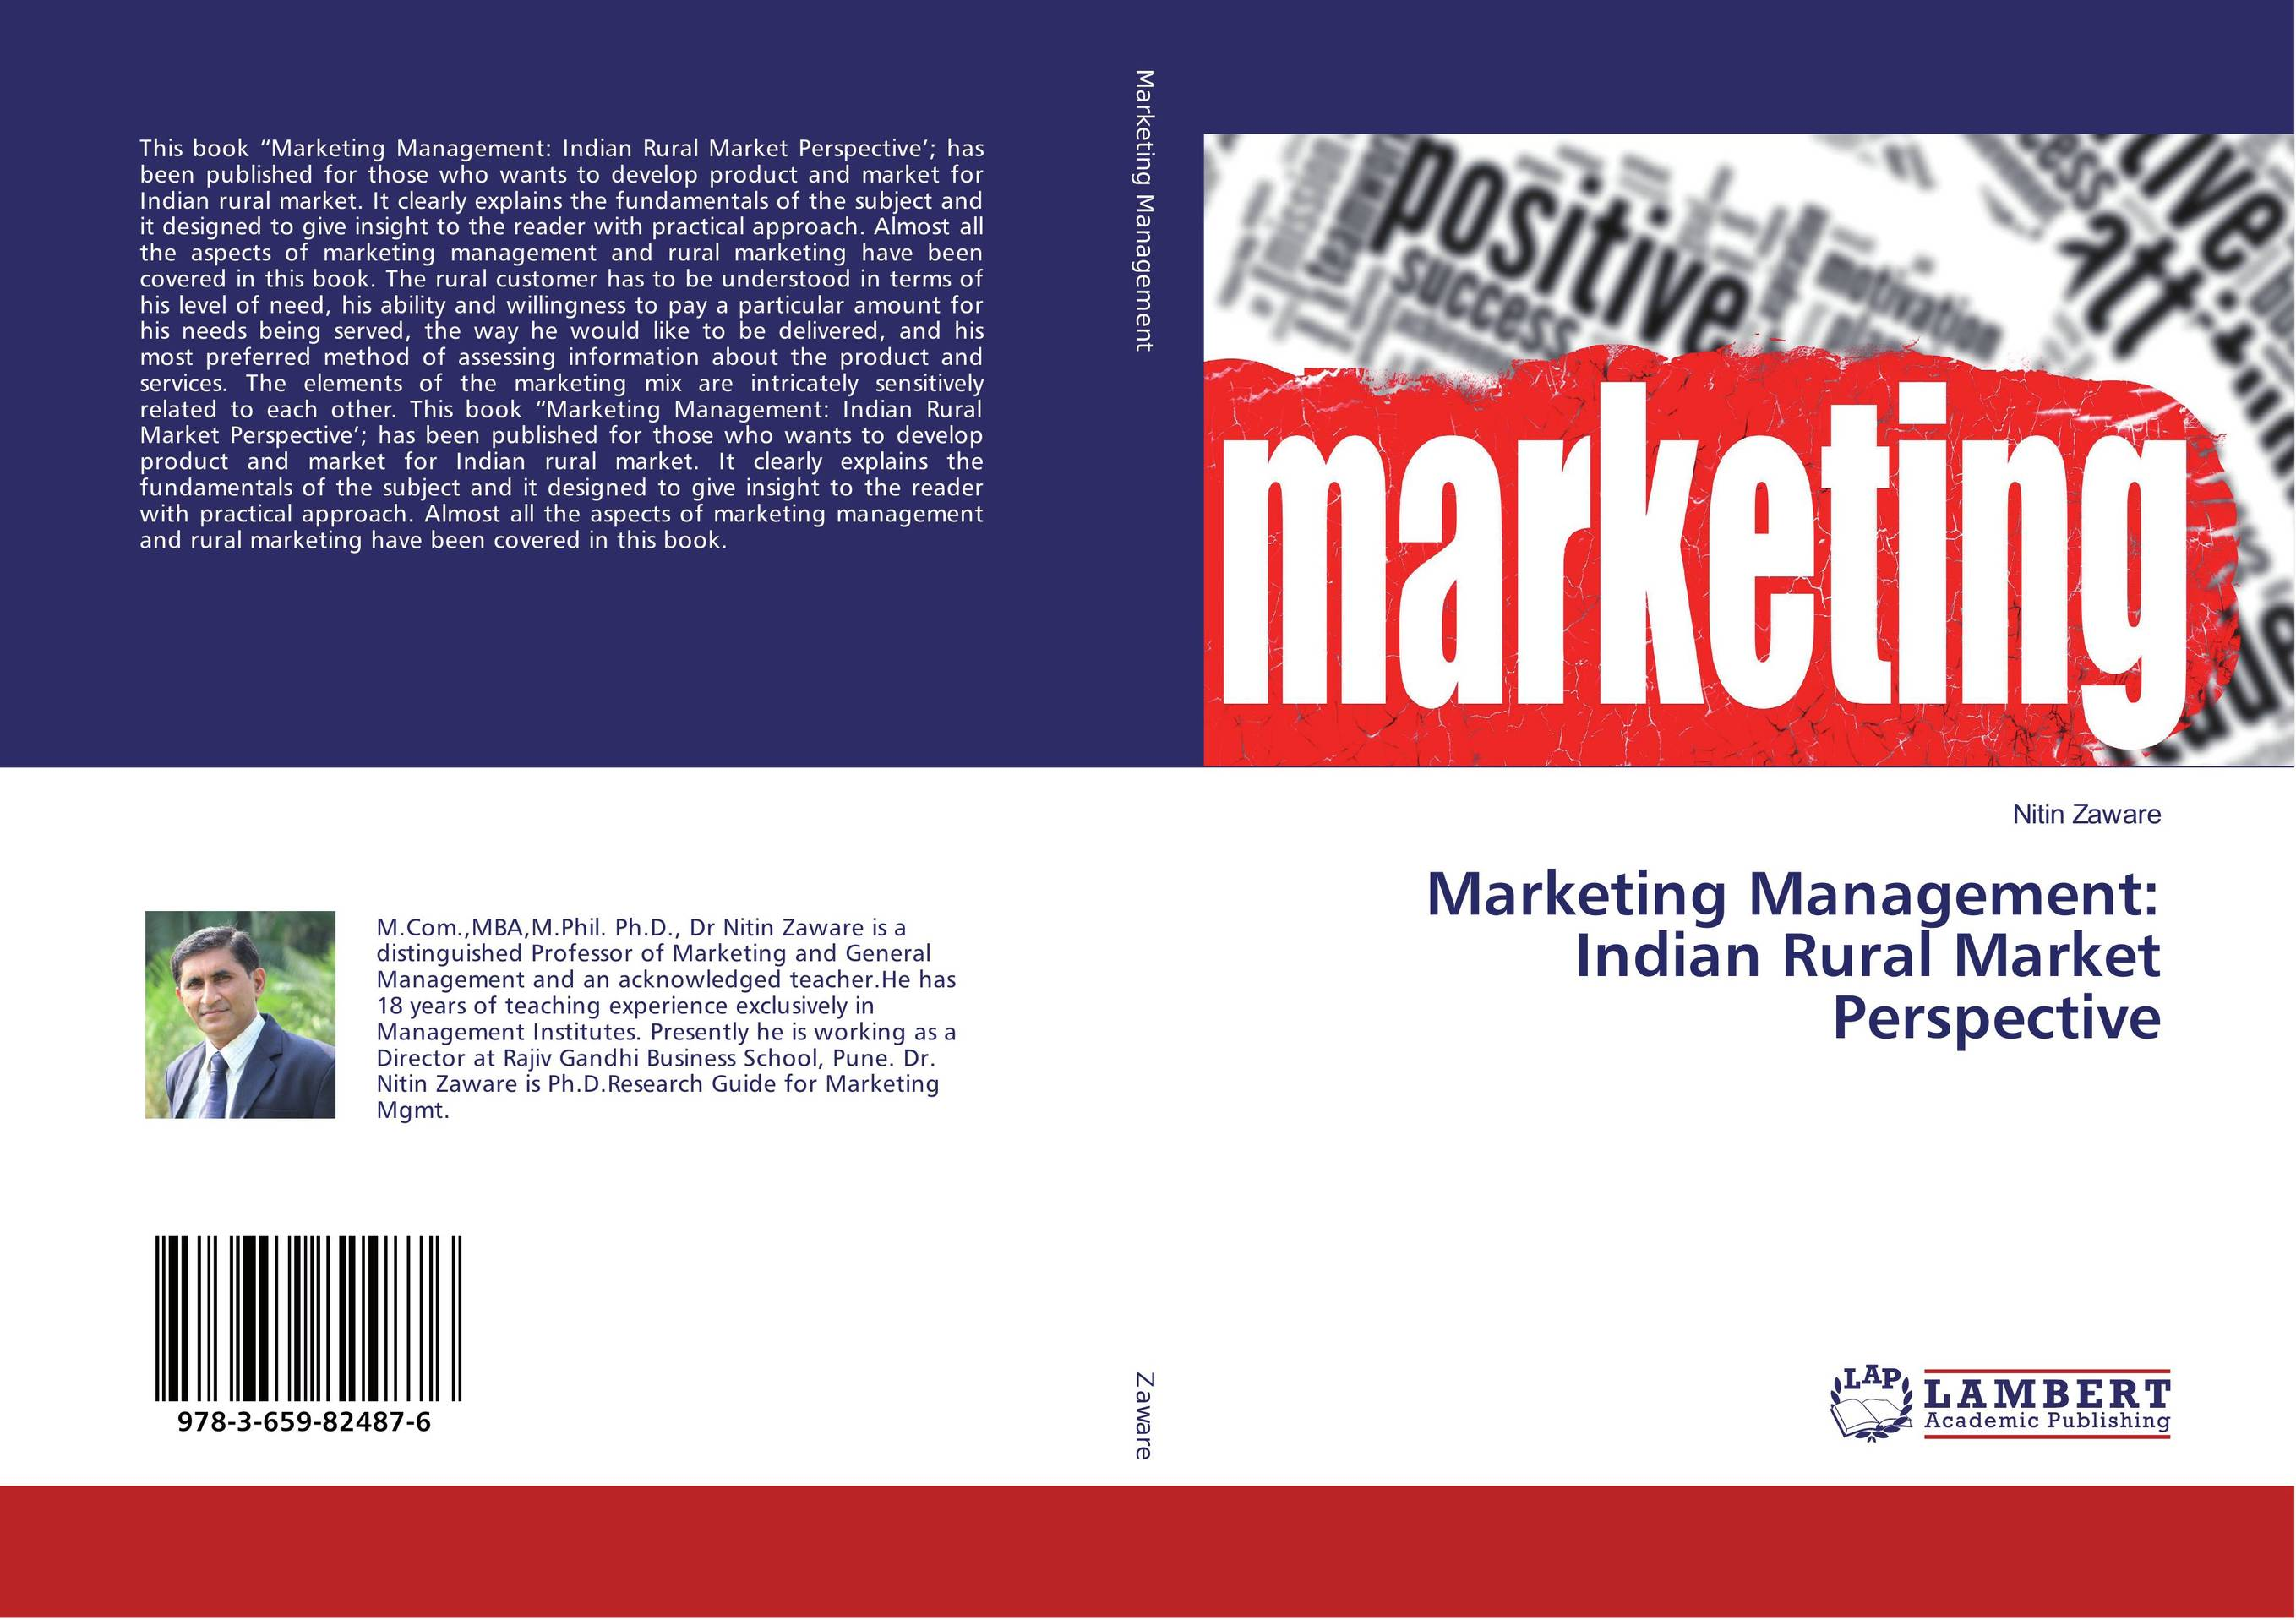 marketing mix of fair lovely in rural market The marketing mix is a business tool used in marketing marketing decisions generally fall into the following four controllable categories: product price place (distribution) promotion these four p's are the parameters that the marketing manager can control, subject to the internal and external constraints of the marketing environment.